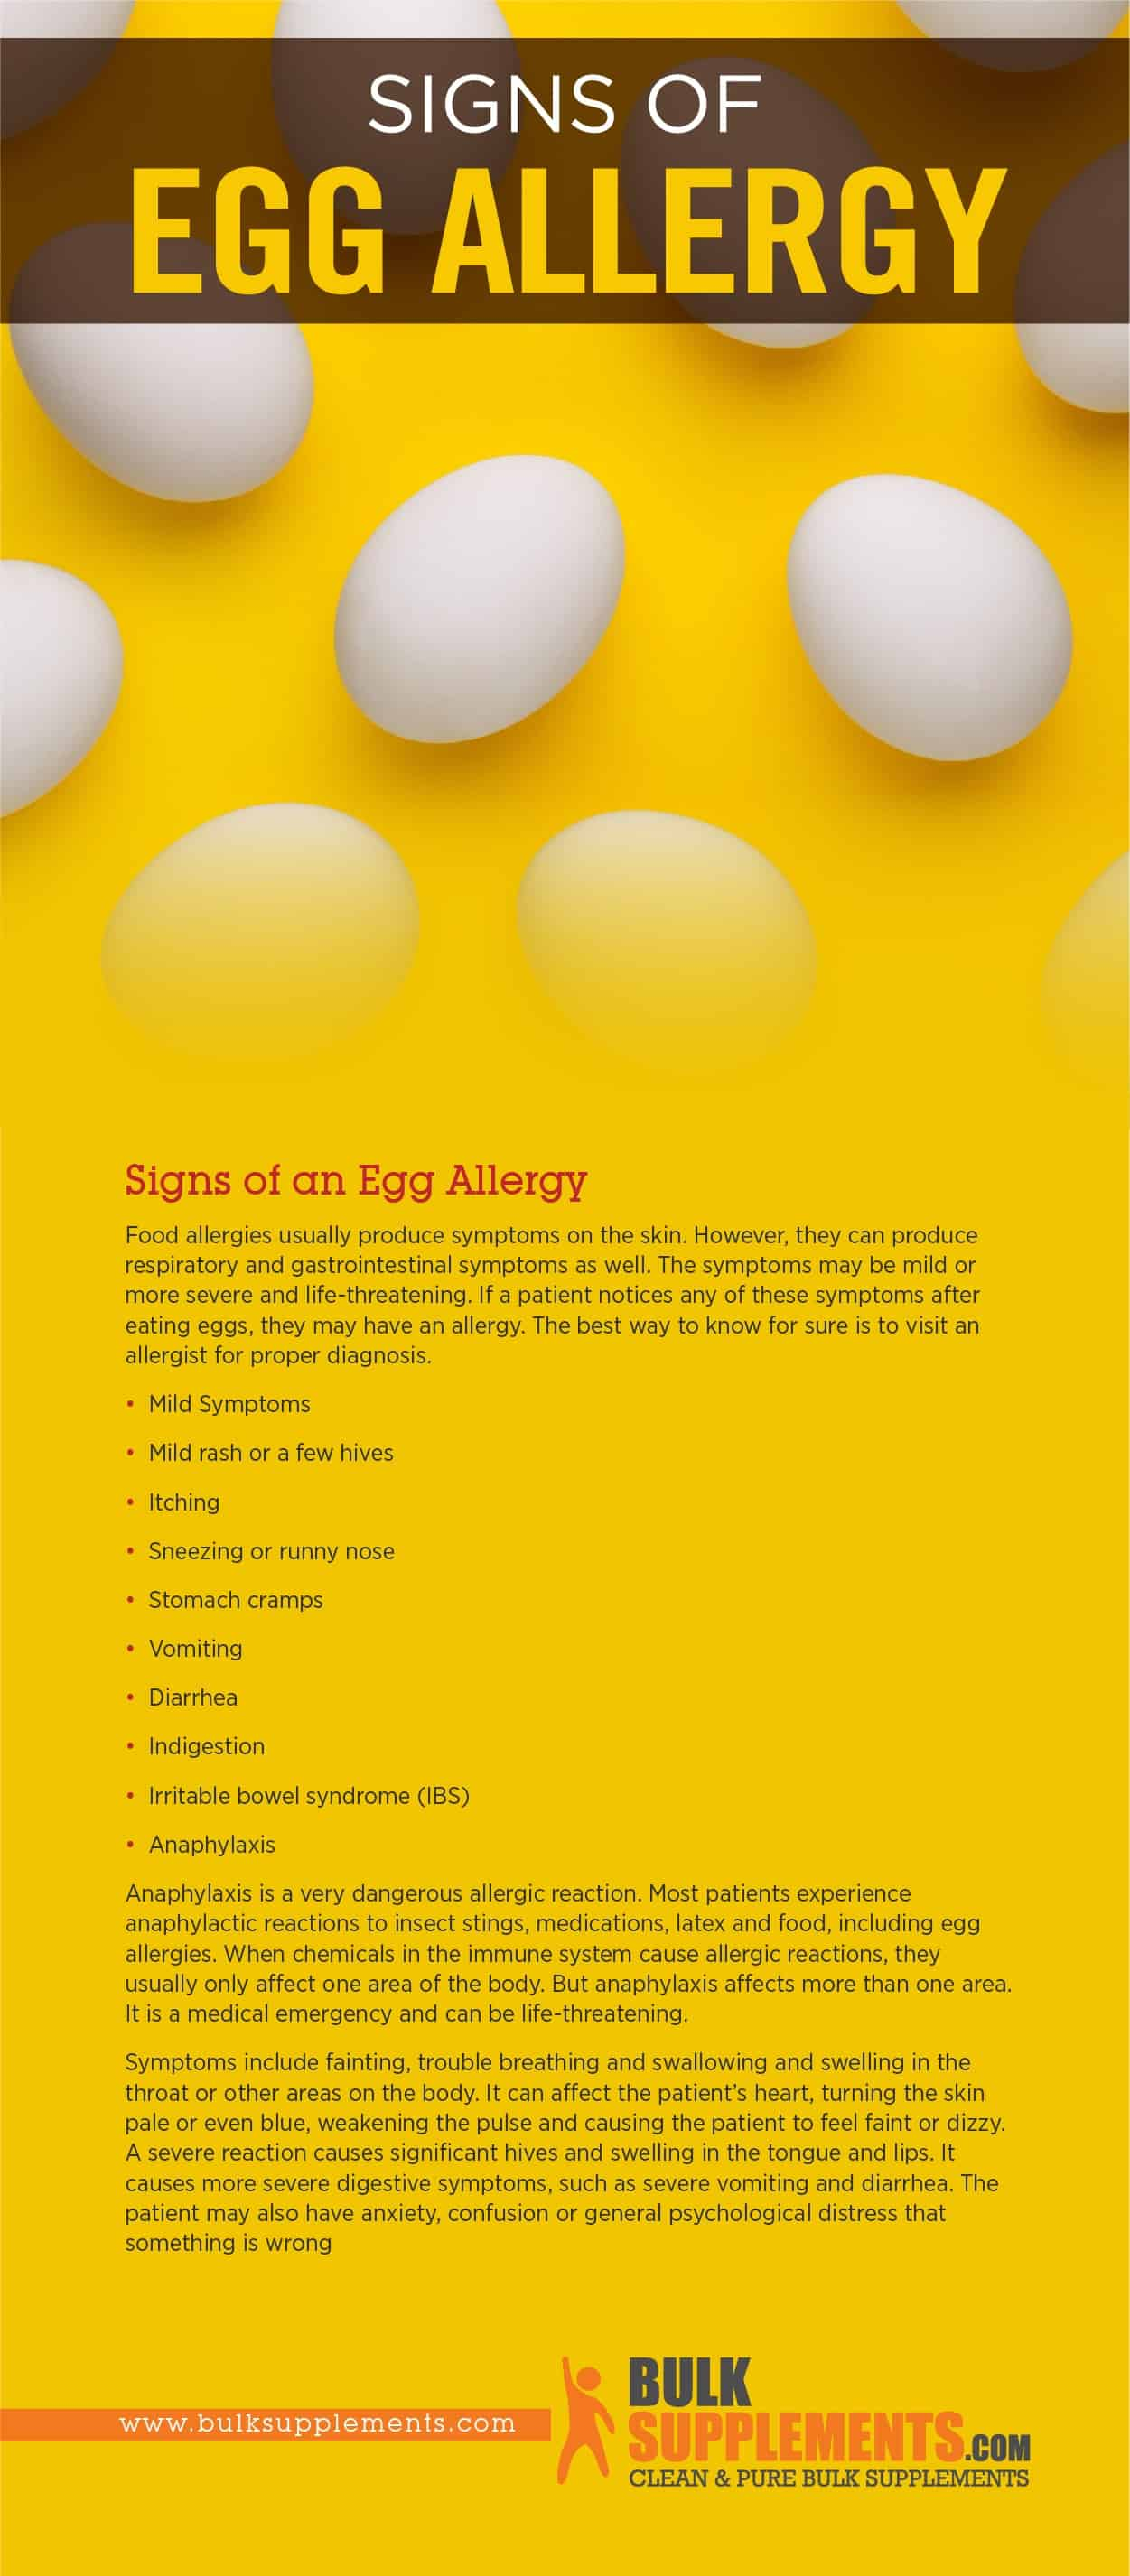 Egg Allergy Signs